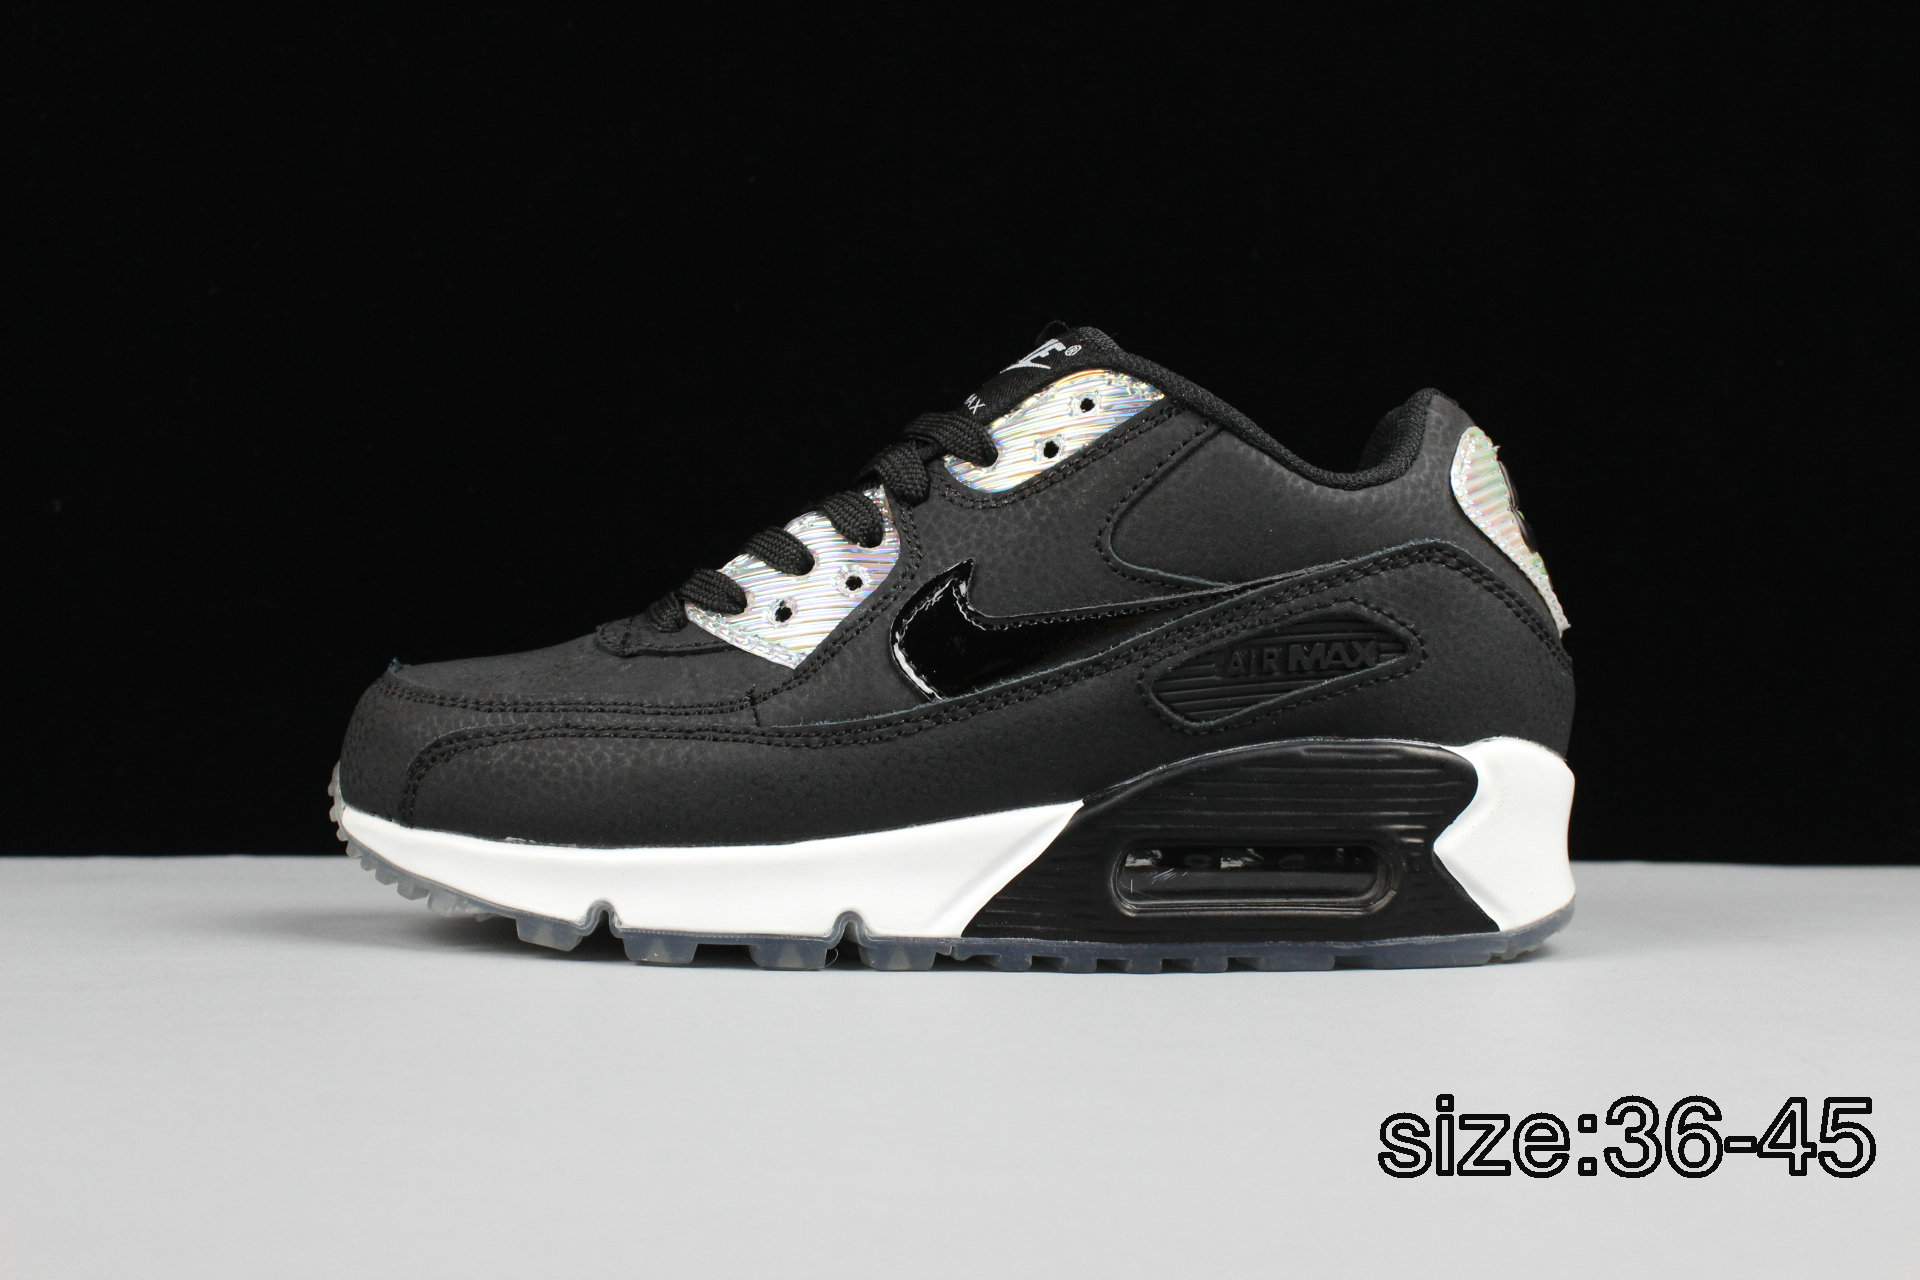 buy popular 2ae9e 0c963 ... where to buy nike air max 90 oreo laser back. u2039 u203a 69daf bc94a